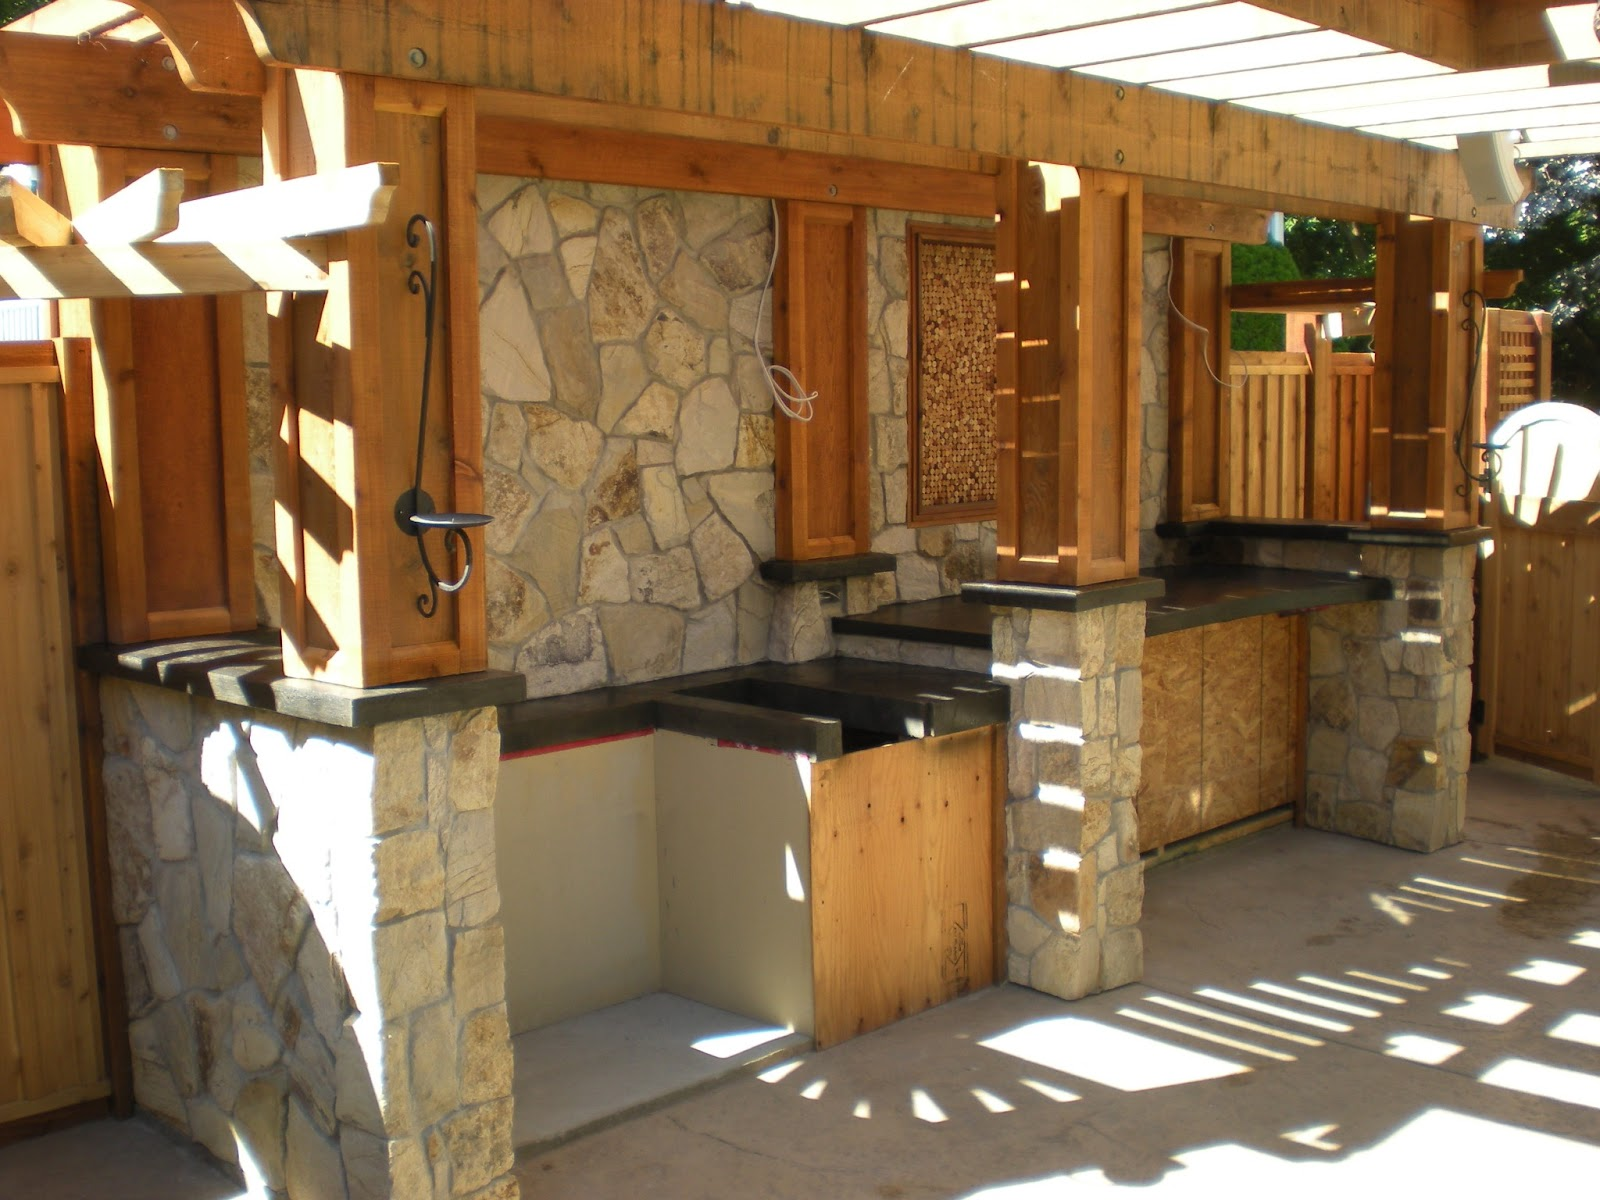 Outdoor Kitchen with Concrete Block